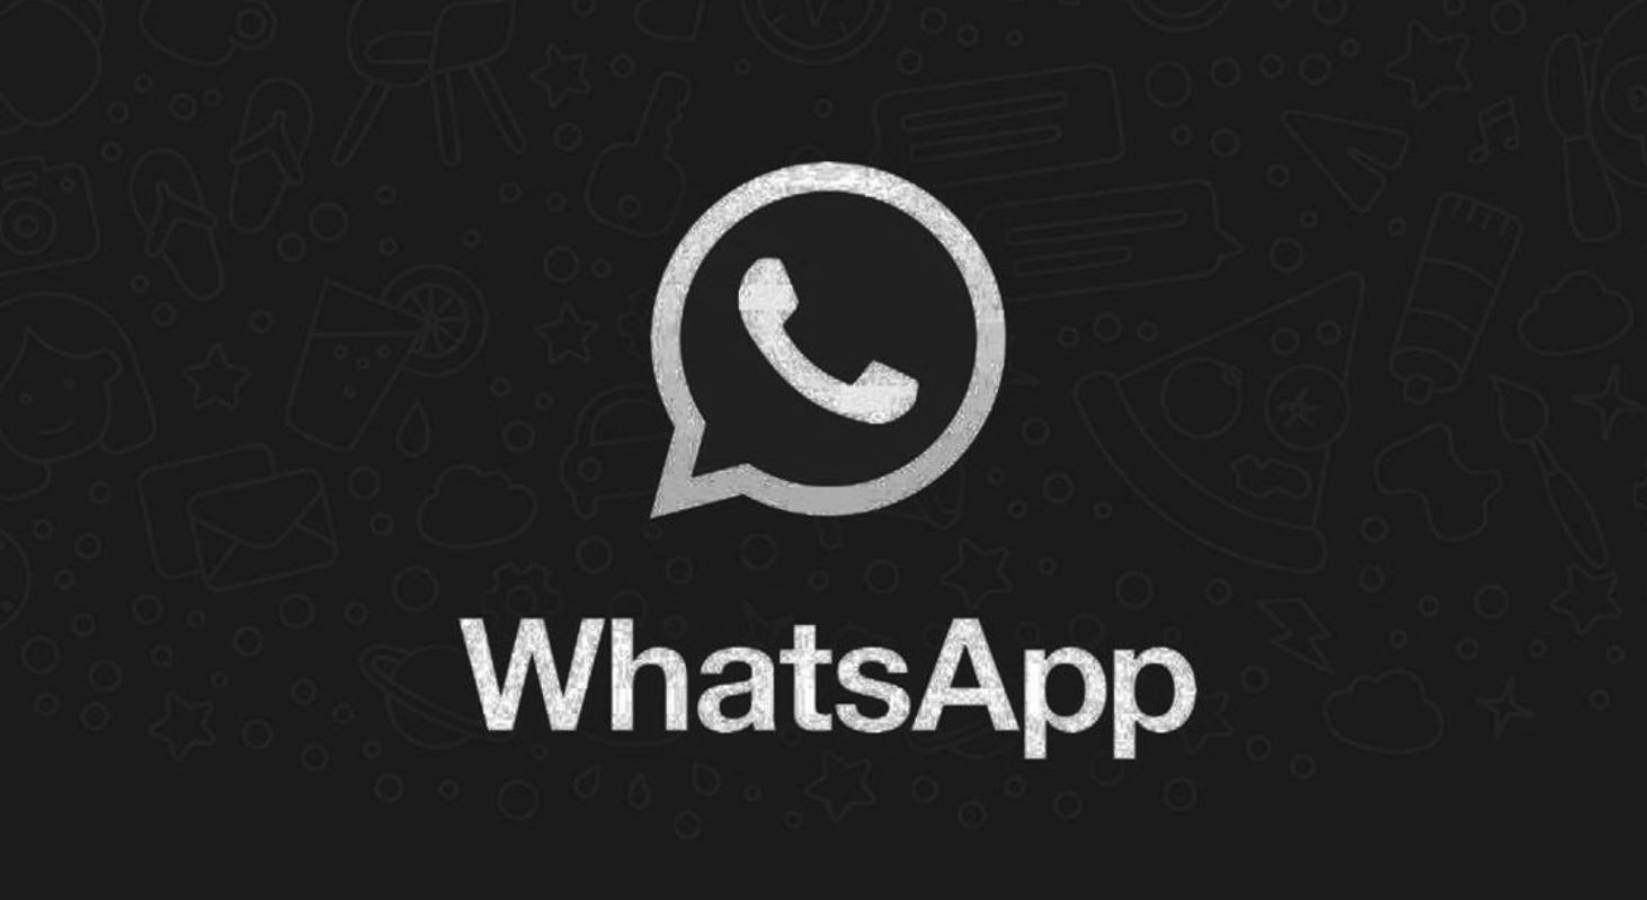 whatsapp doua dark mode foto